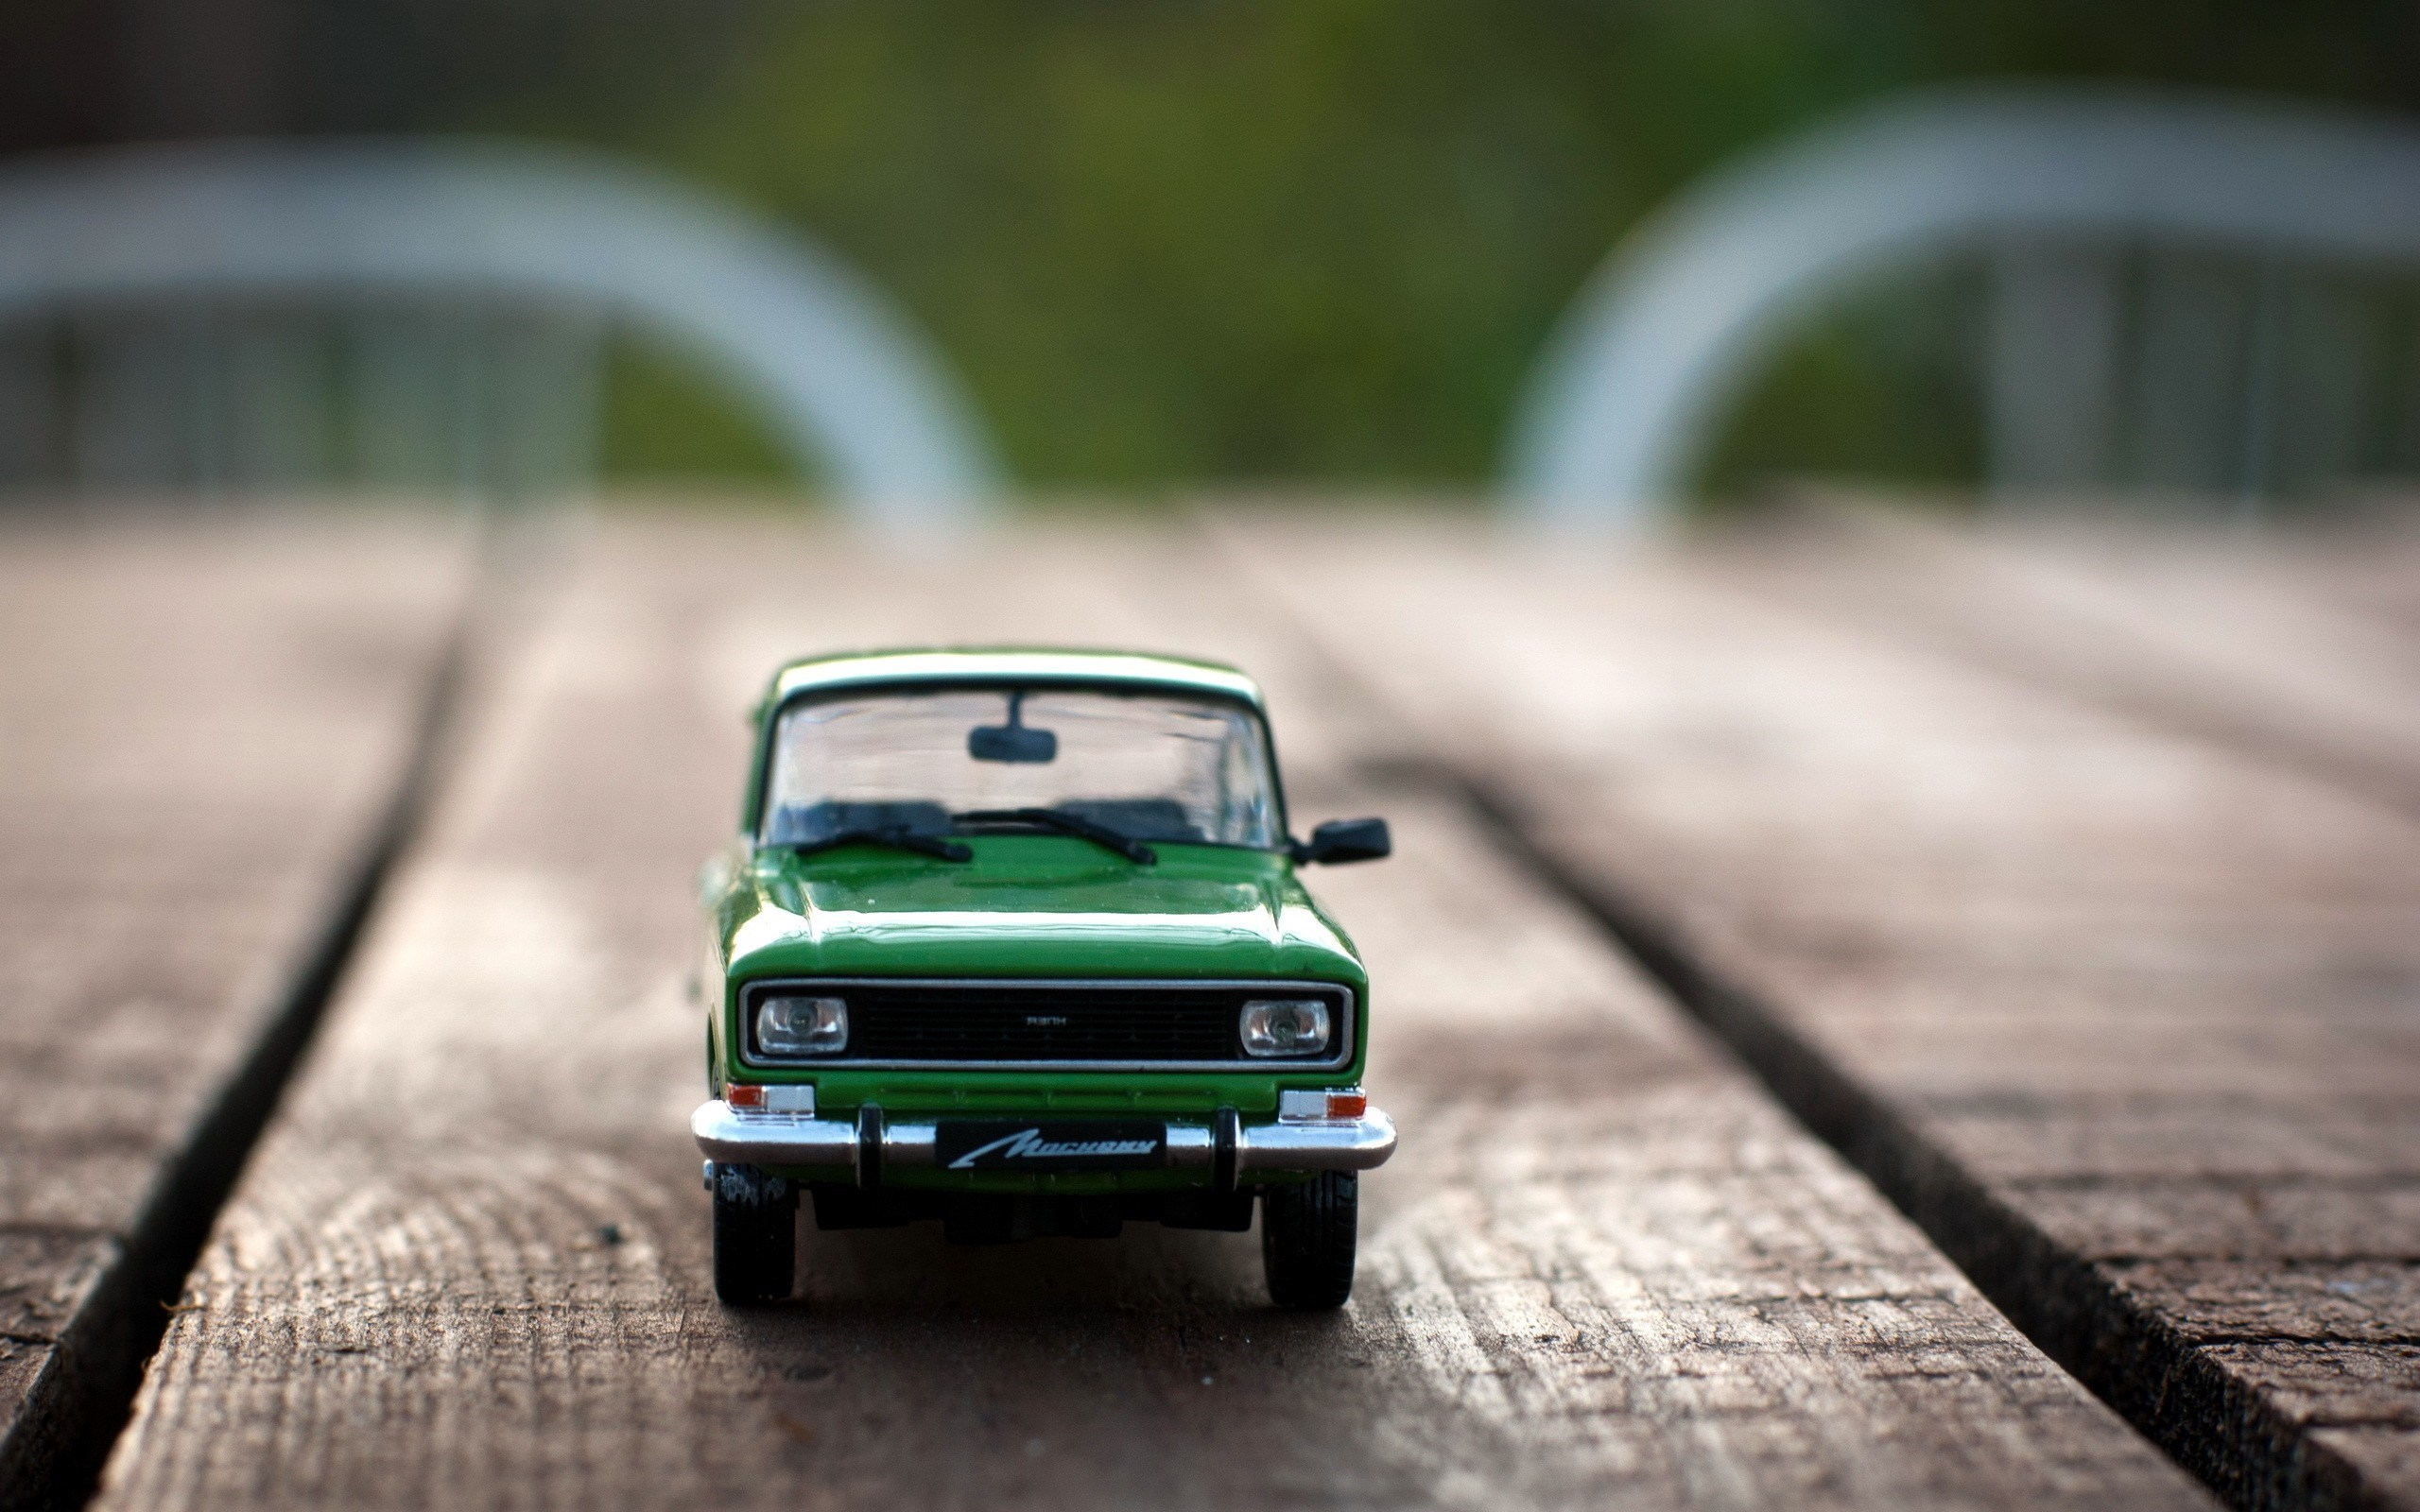 Green Toy Car Wooden Board HD Wallpaper